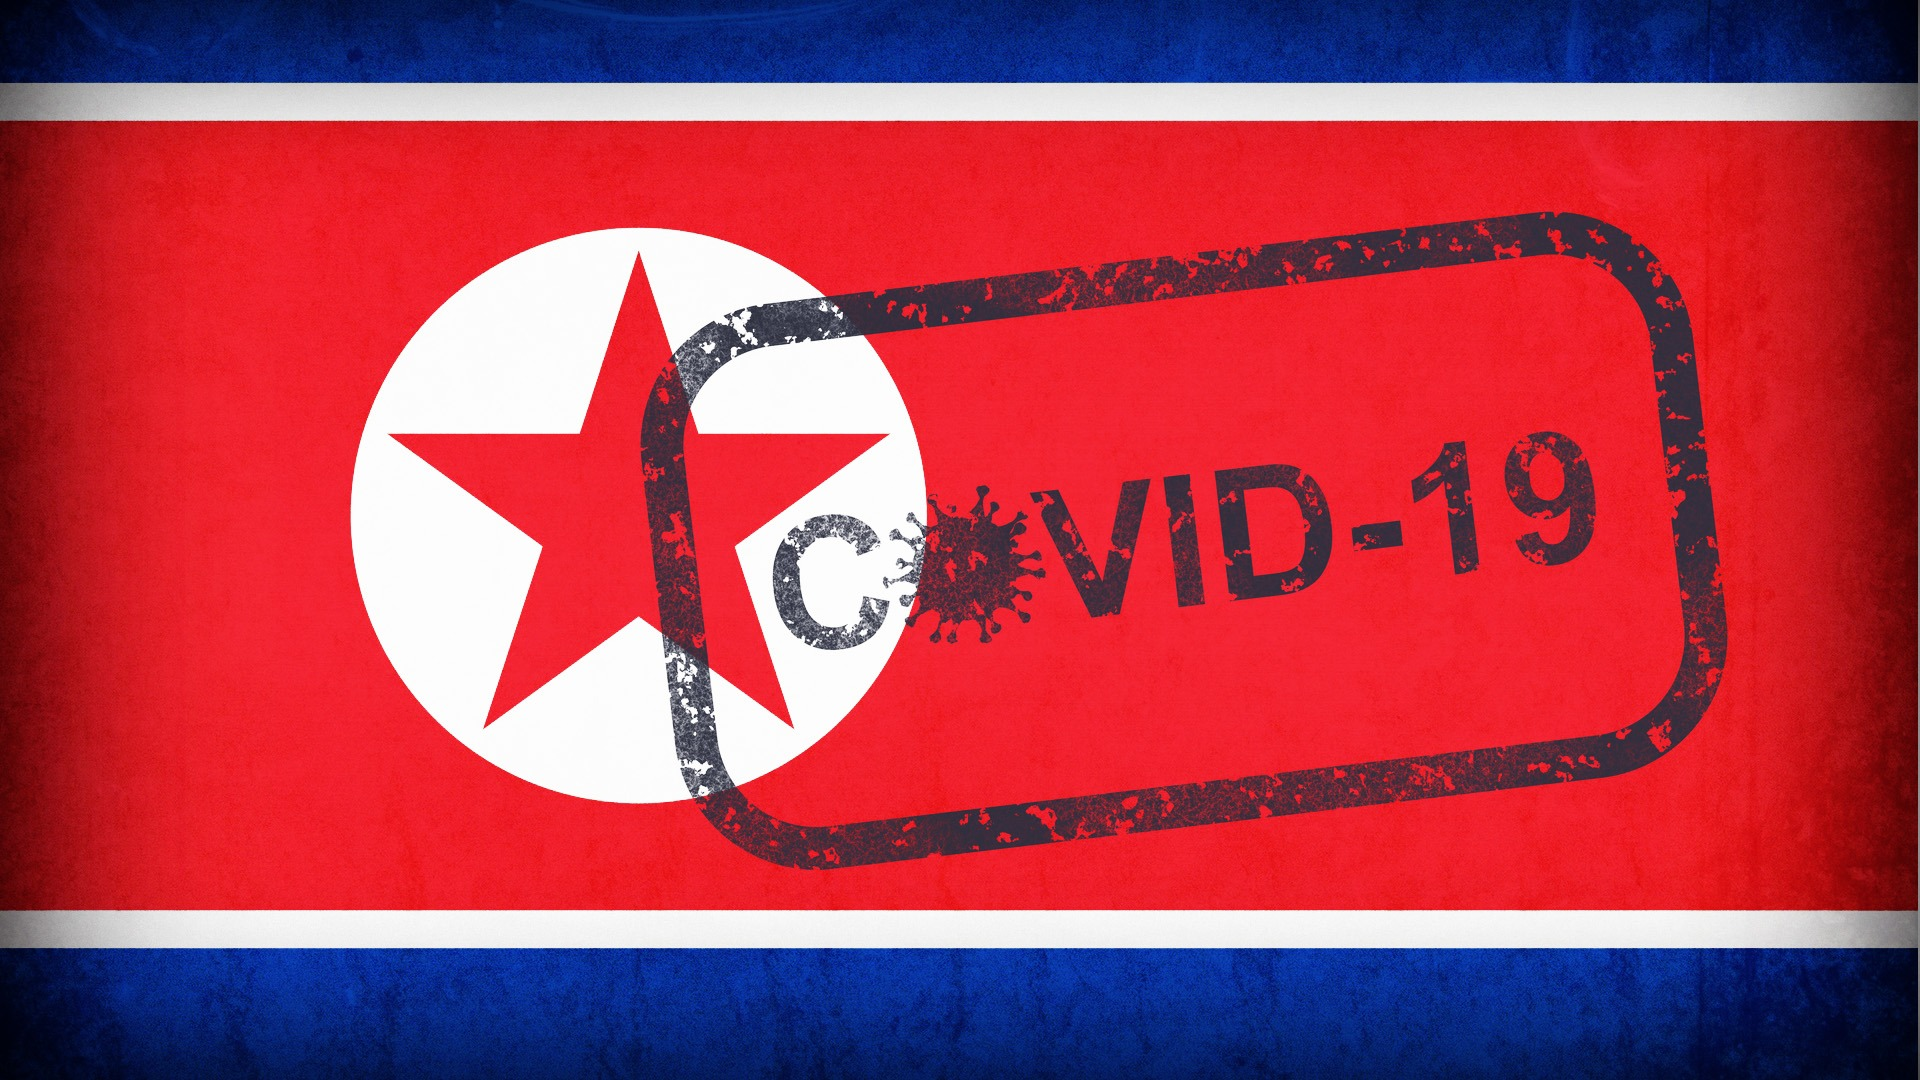 [Press Release] The DPRK's COVID-19 Outbreak and its Response